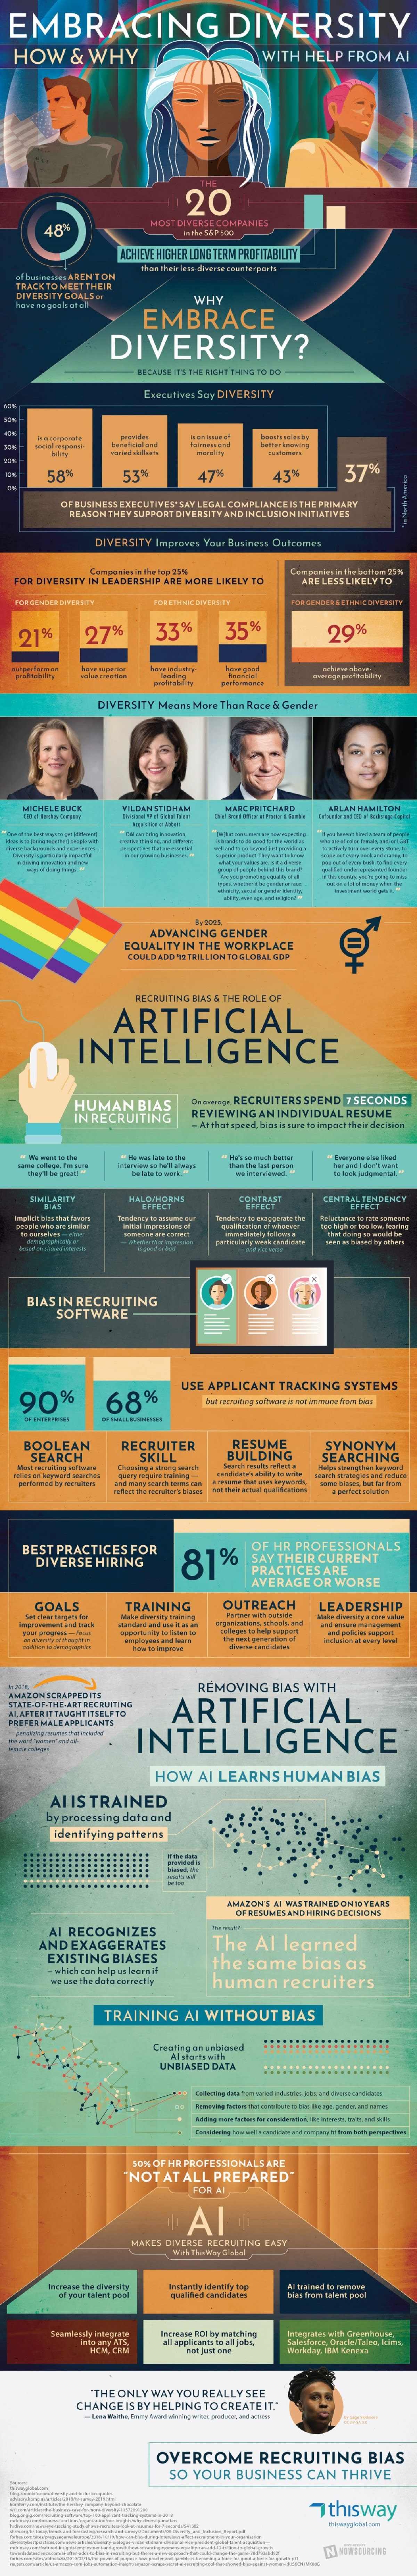 embracing-diversity-how-and-why-with-help-from-ai-infographic